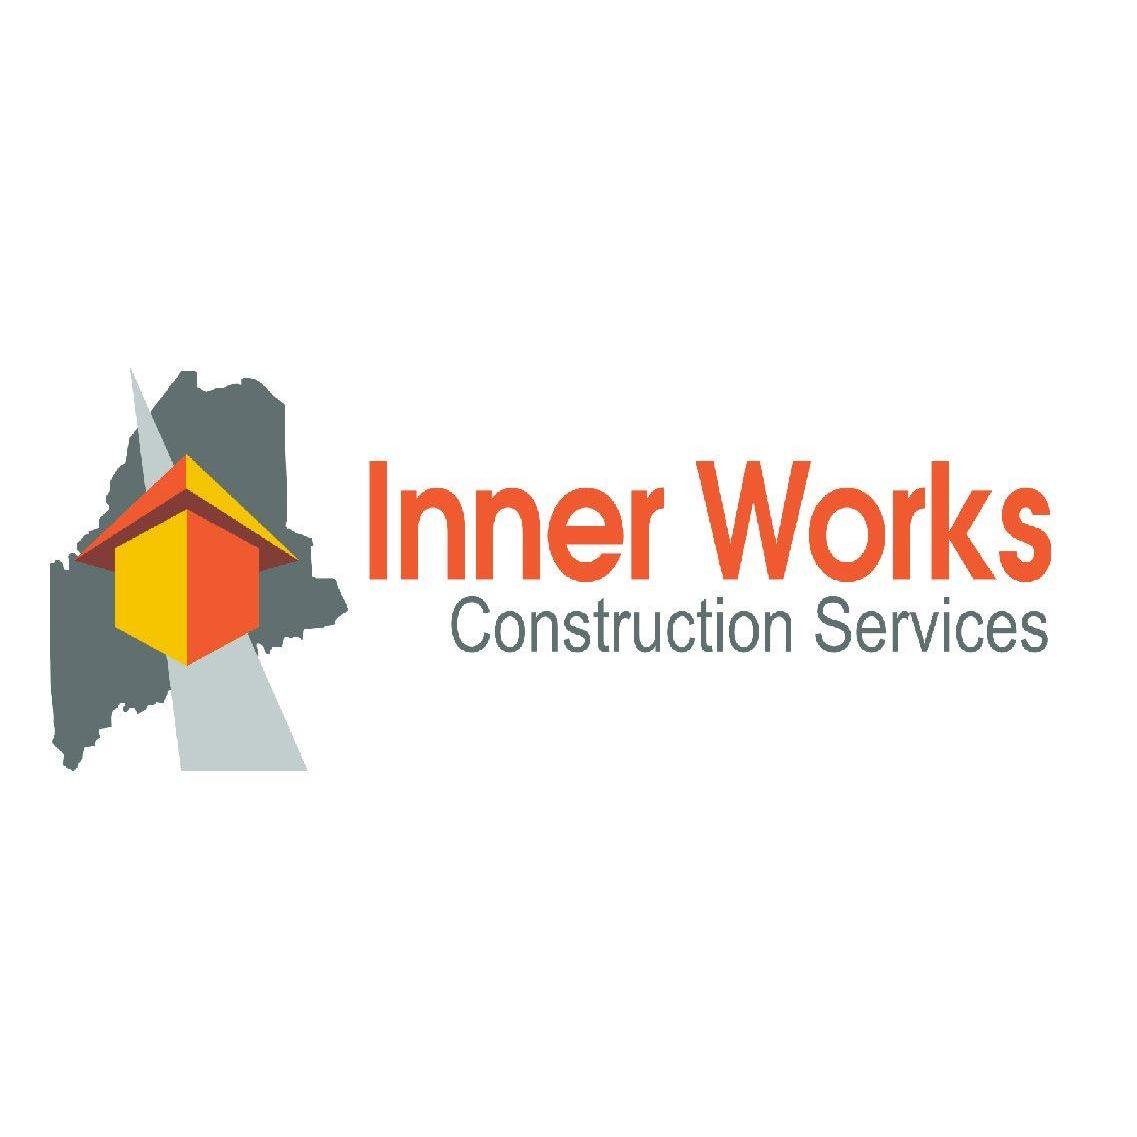 Inner Works Construction Services